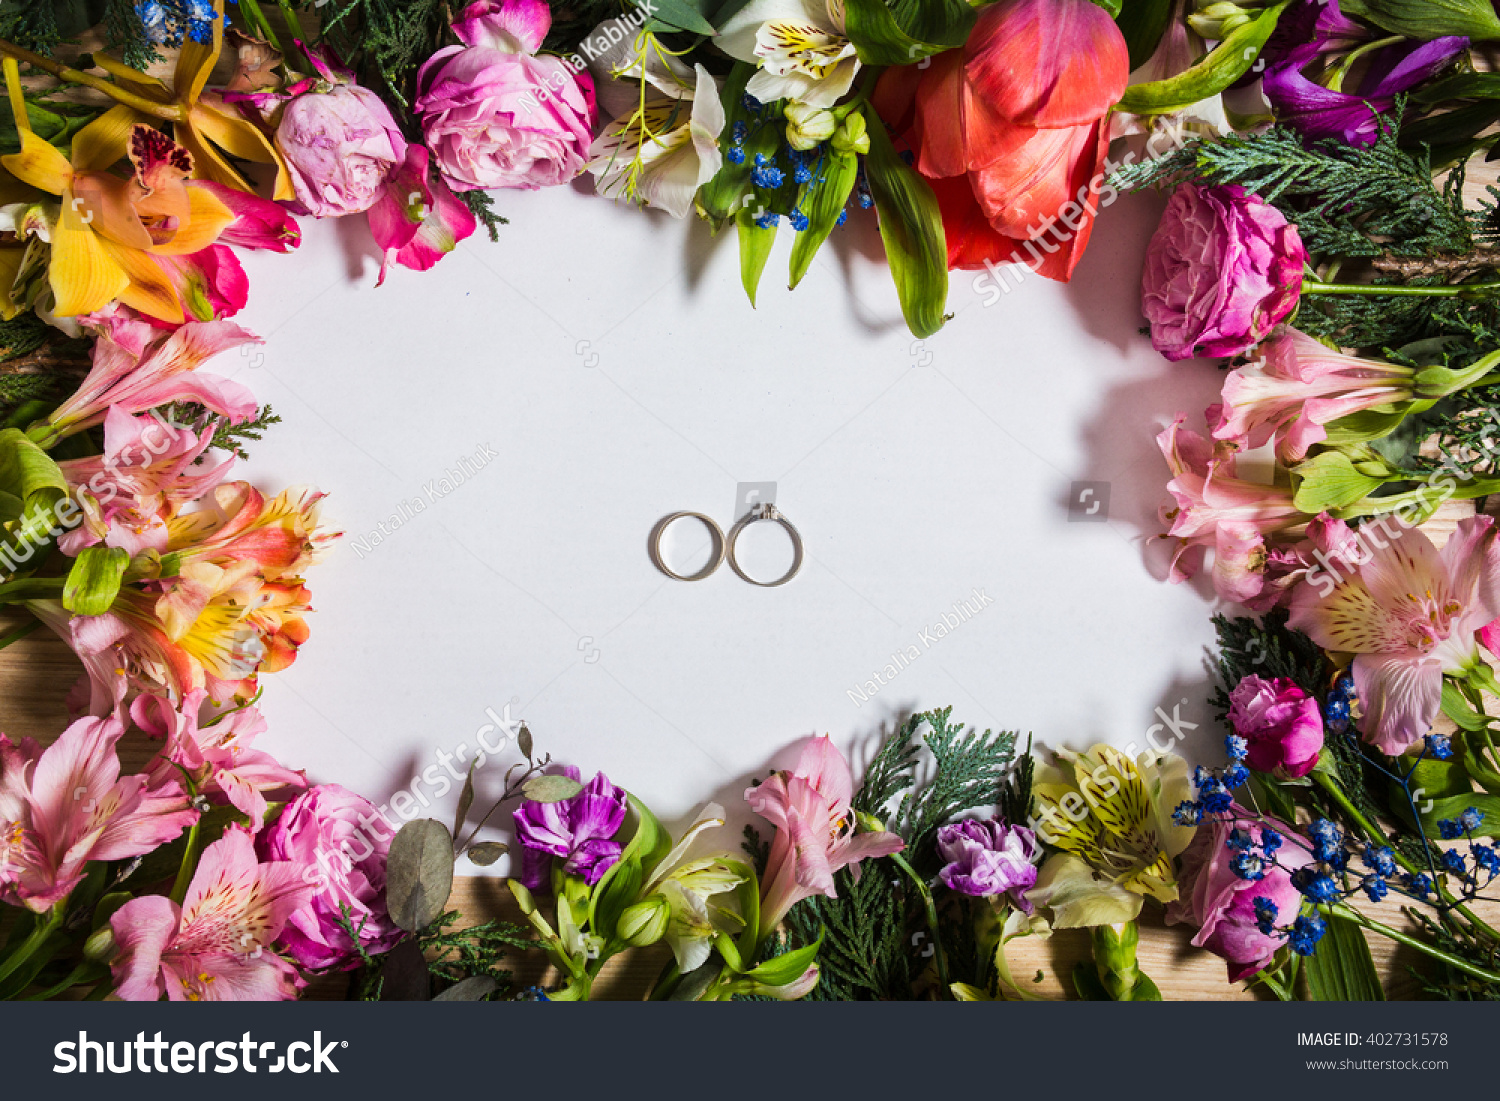 Top view blank page pink spring stock photo royalty free 402731578 top view blank page and pink spring flowers on wooden table background mightylinksfo